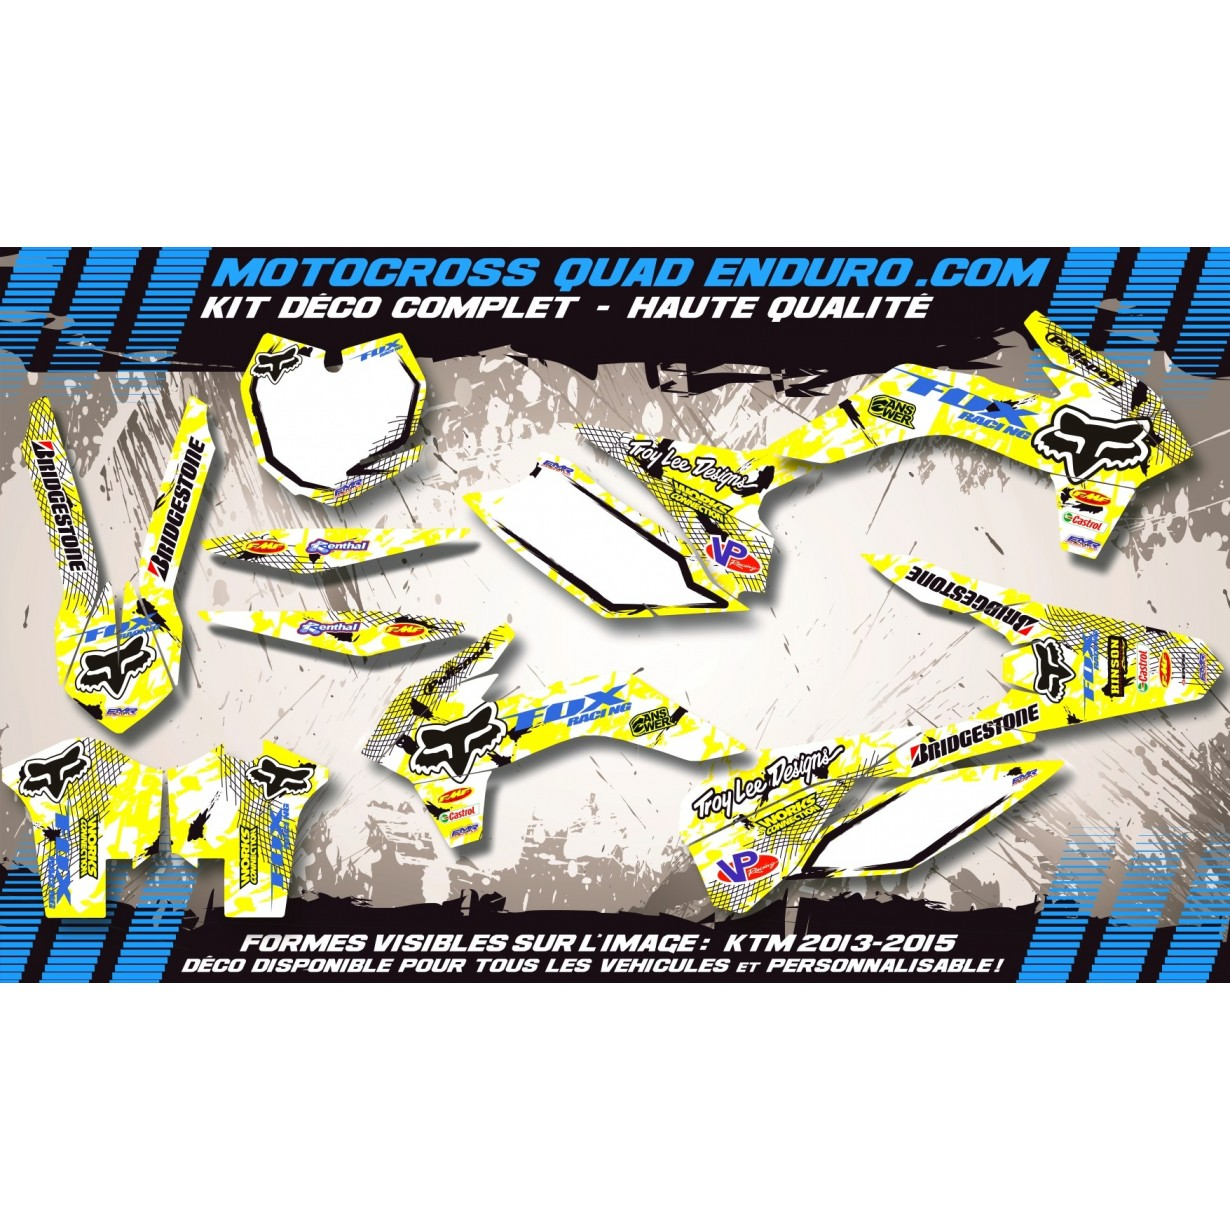 KIT DÉCO Perso 450 RMZ 2007 FOX MA9D